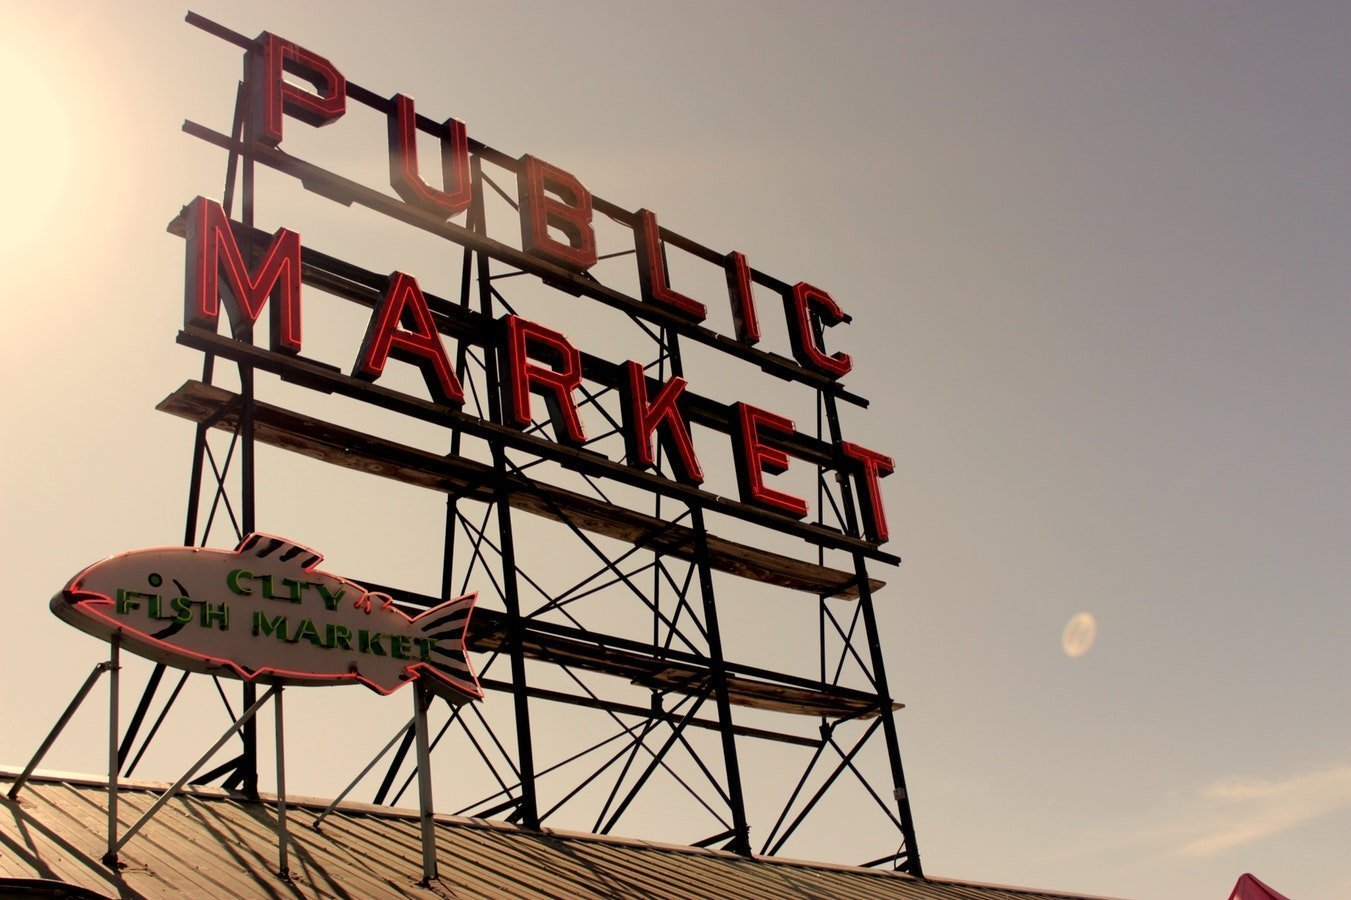 Top 10 Sights to See in Seattle: Pike Place Market